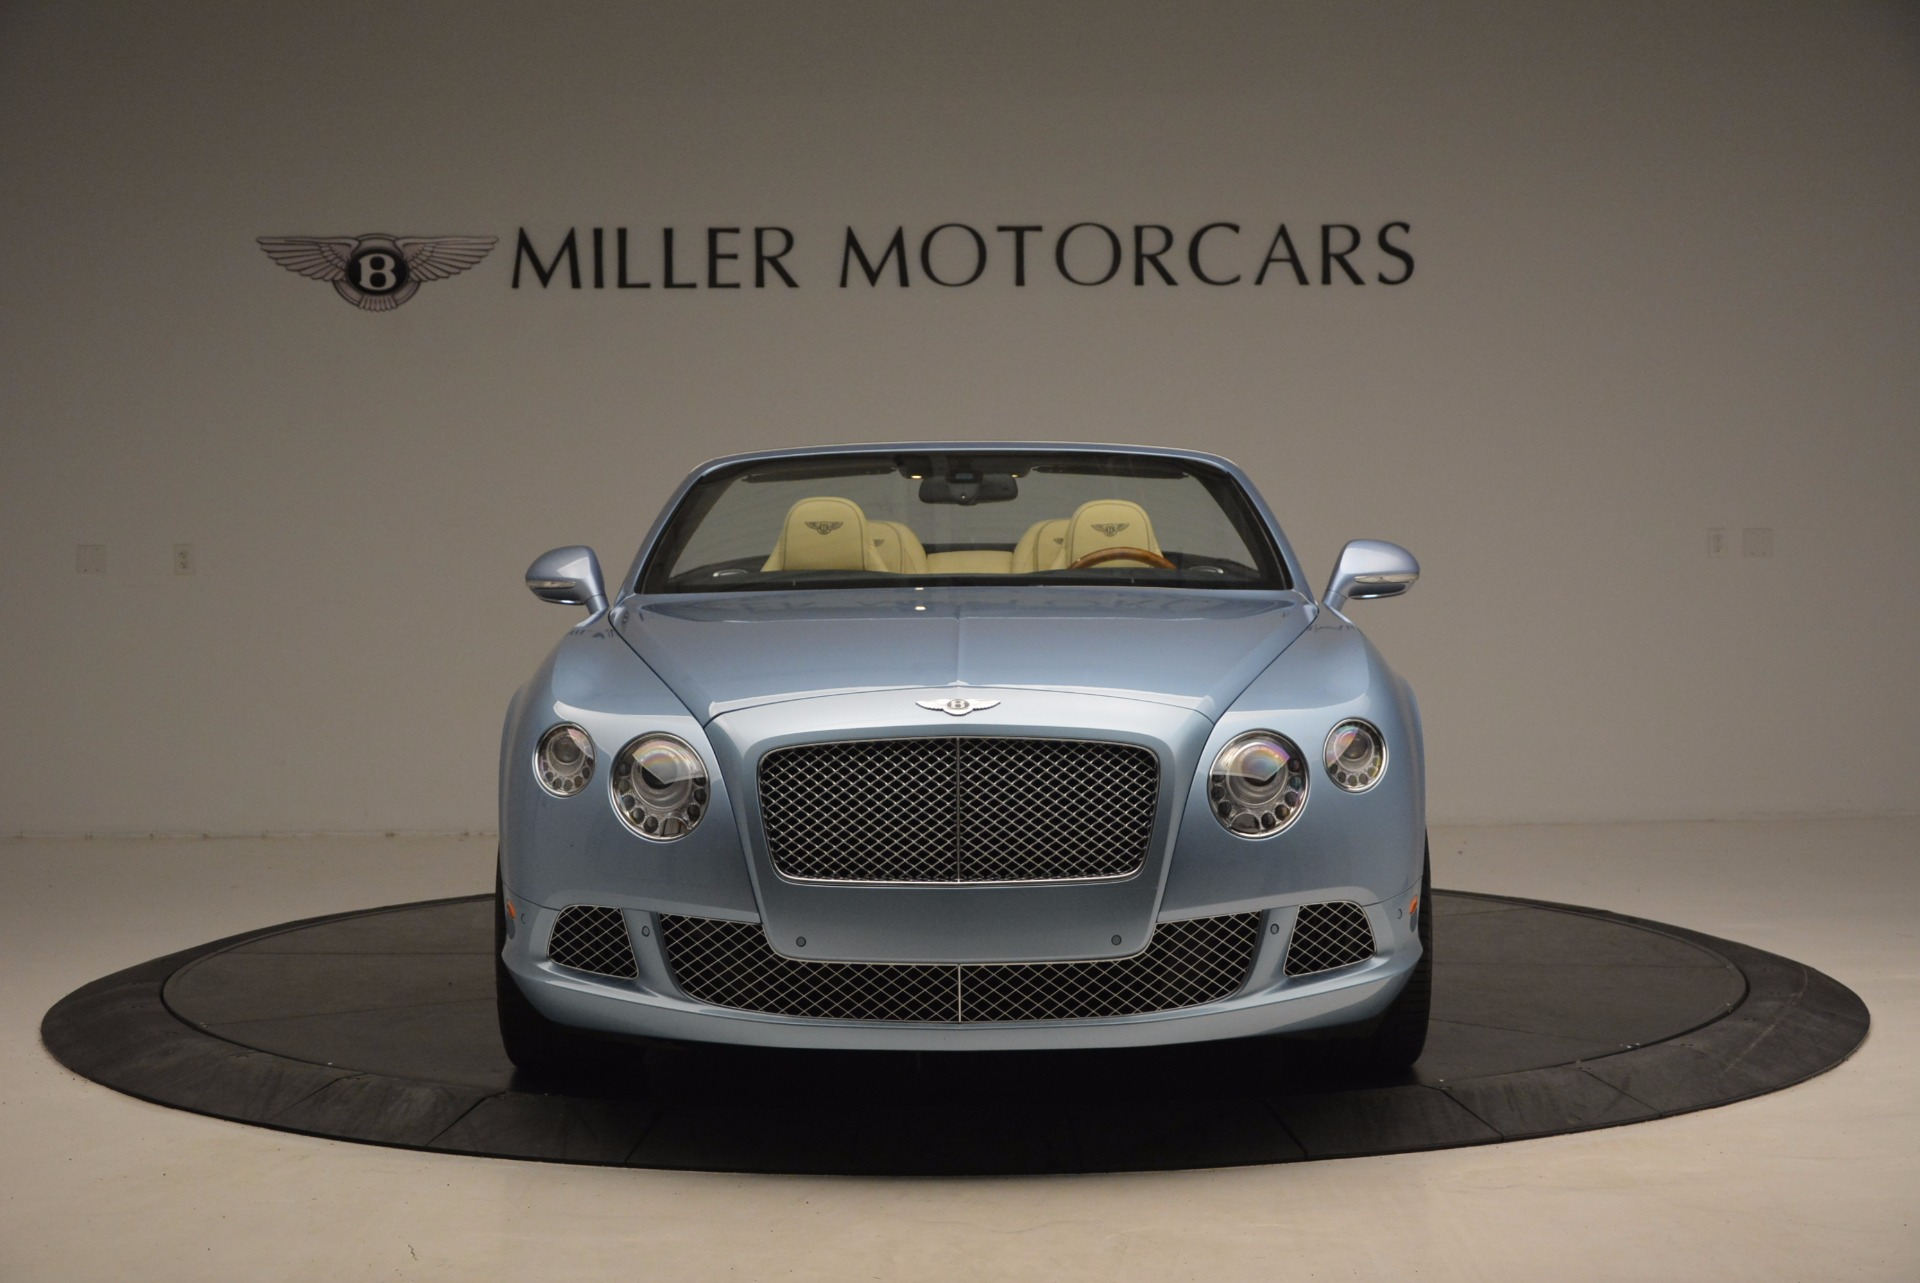 Used 2012 Bentley Continental GTC W12 For Sale In Westport, CT 1475_p12